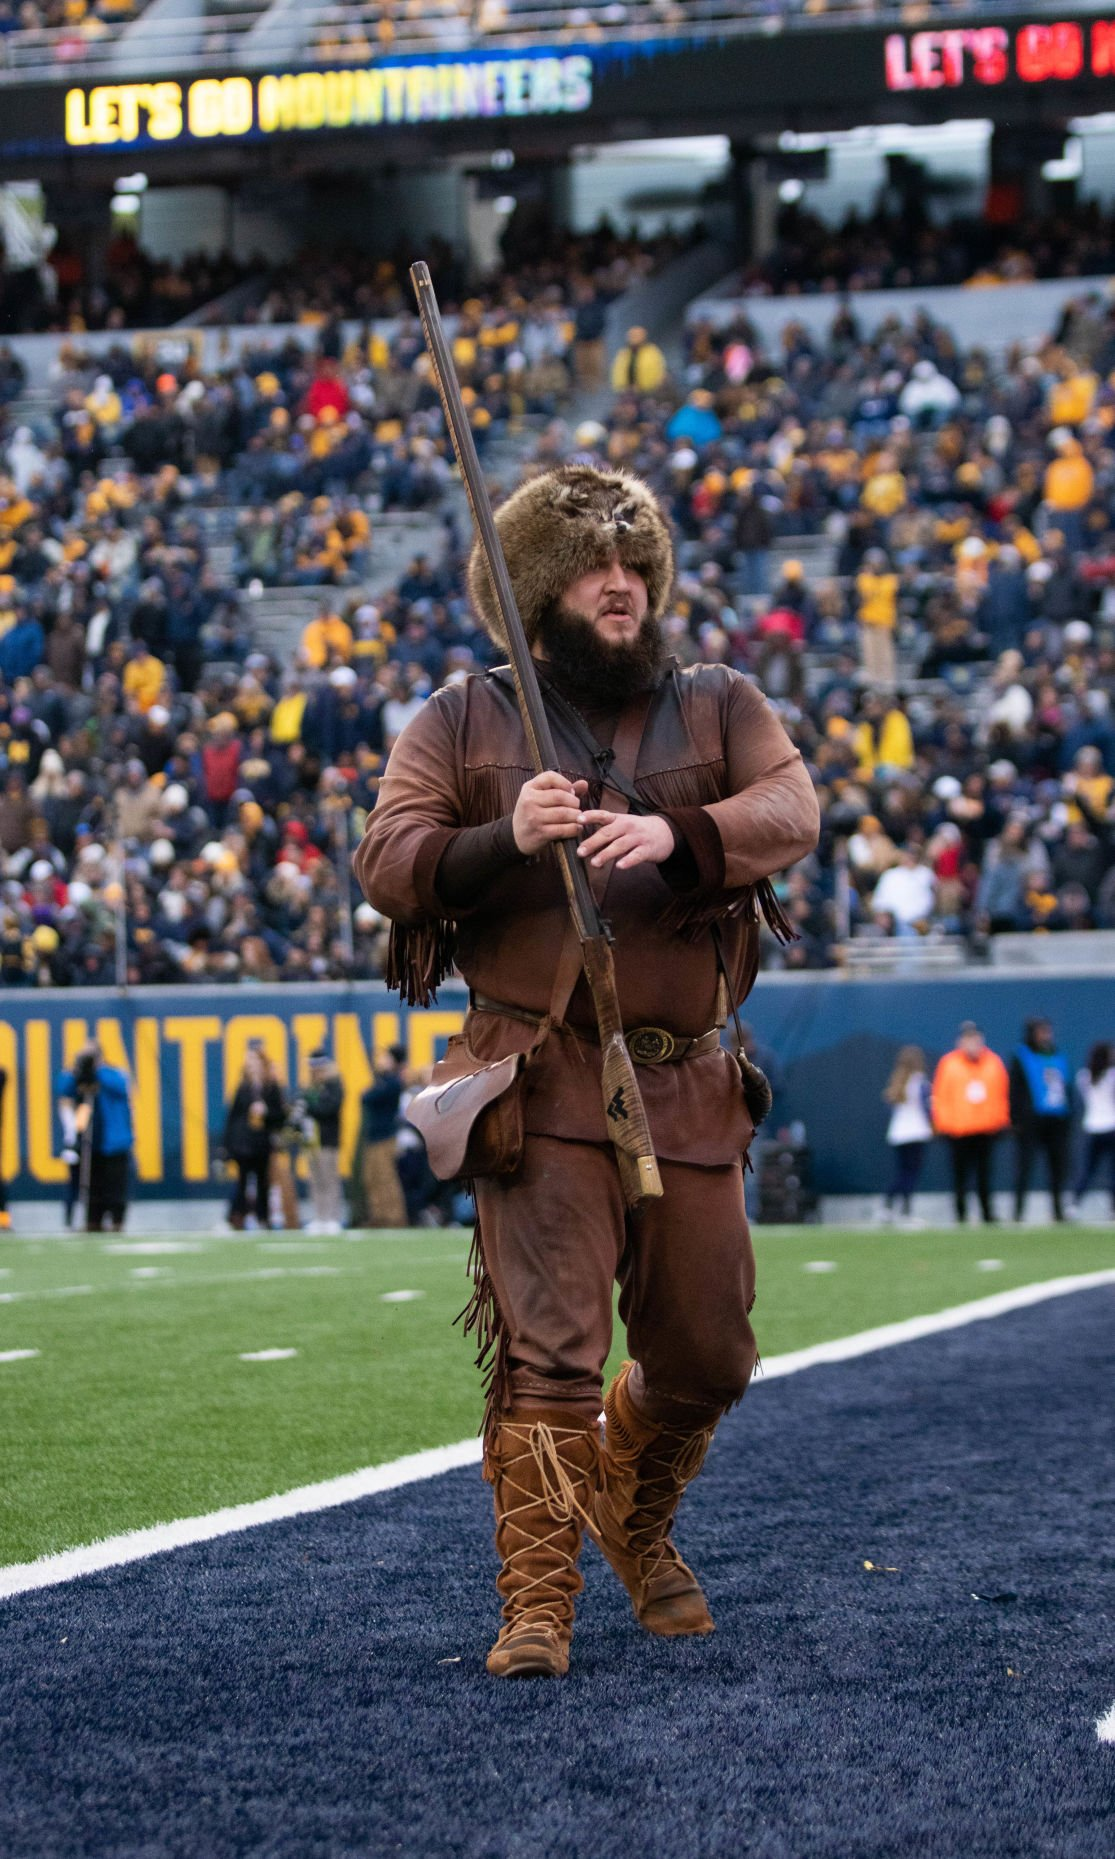 Mountaineer Mascot Timothy Eads celebrates as the Mountaineers enter the red zone against Oklahoma State at Milan Puskar Stadium on Nov. 23, 2019.